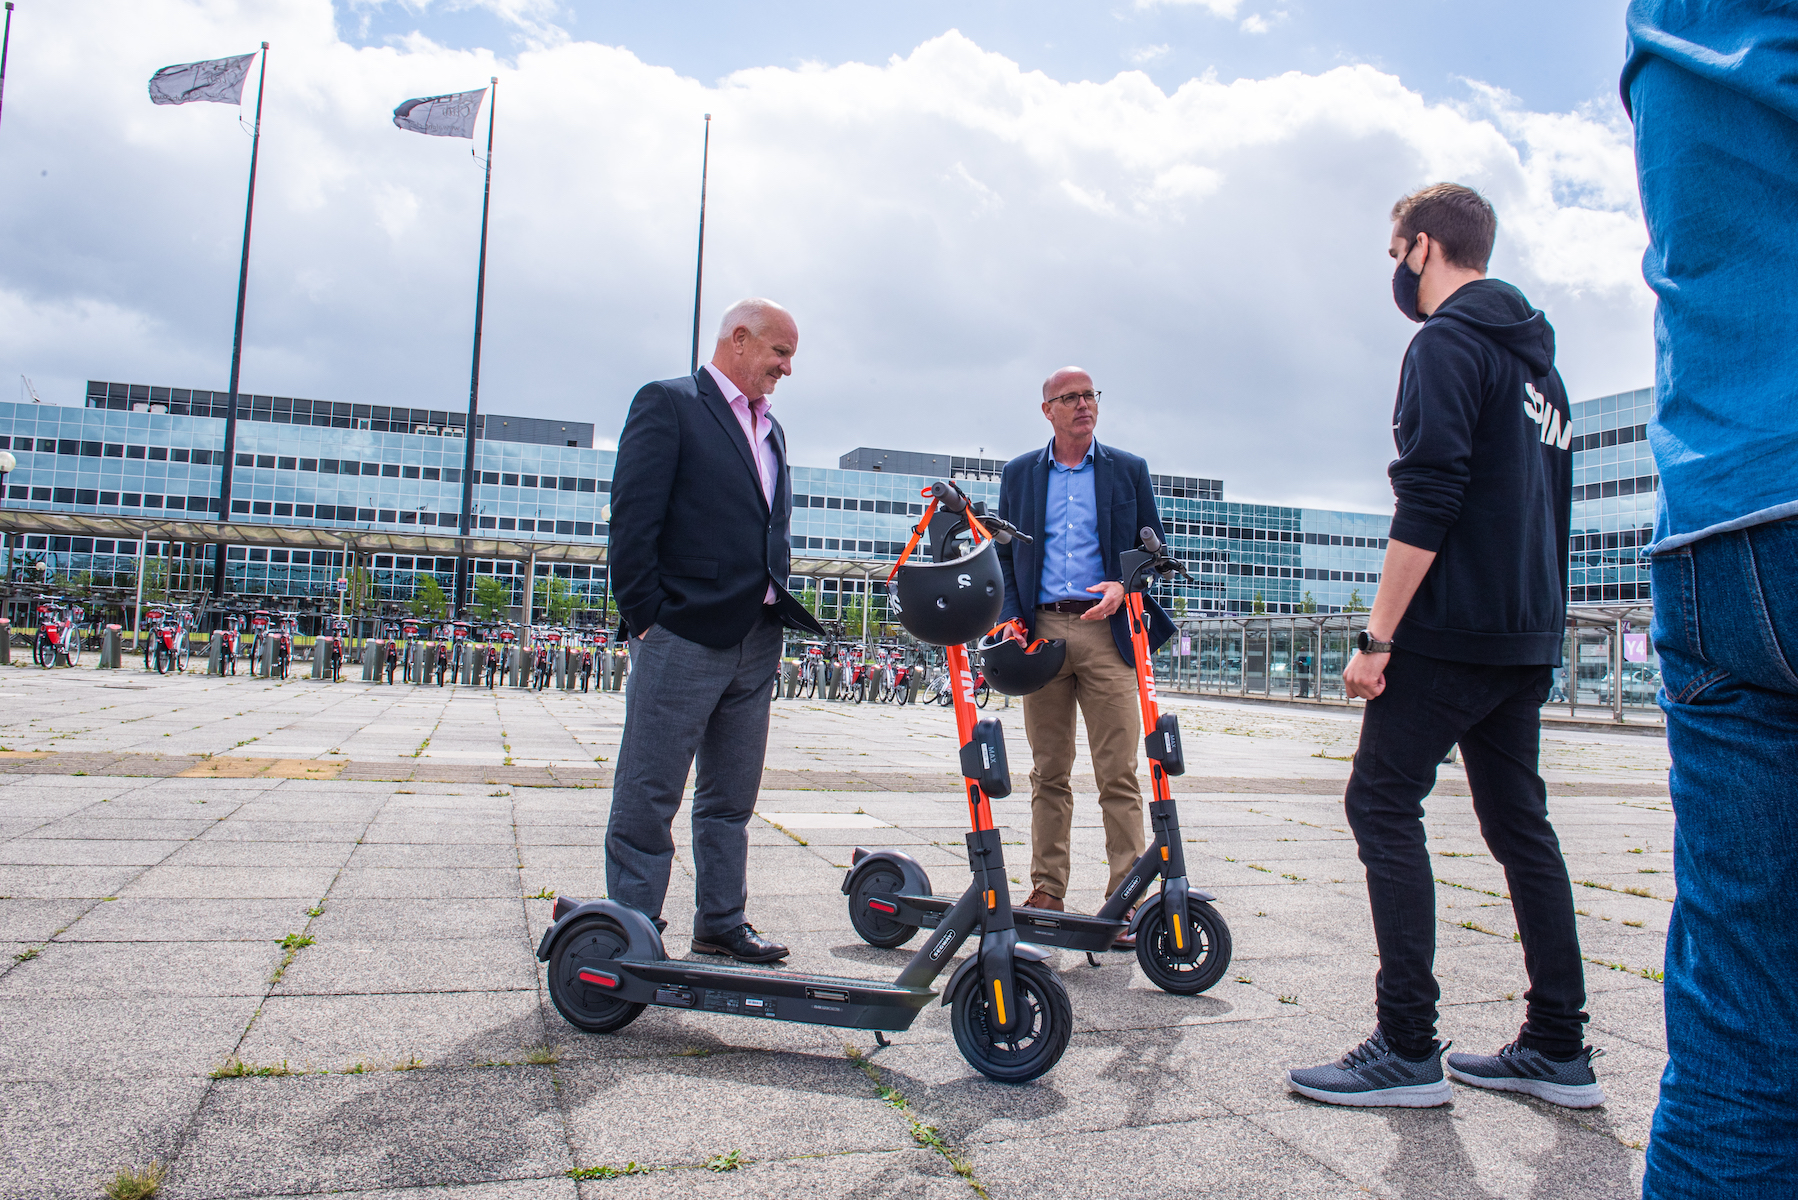 Micromobility firm Spin launches e-scooter trial in Milton Keynes